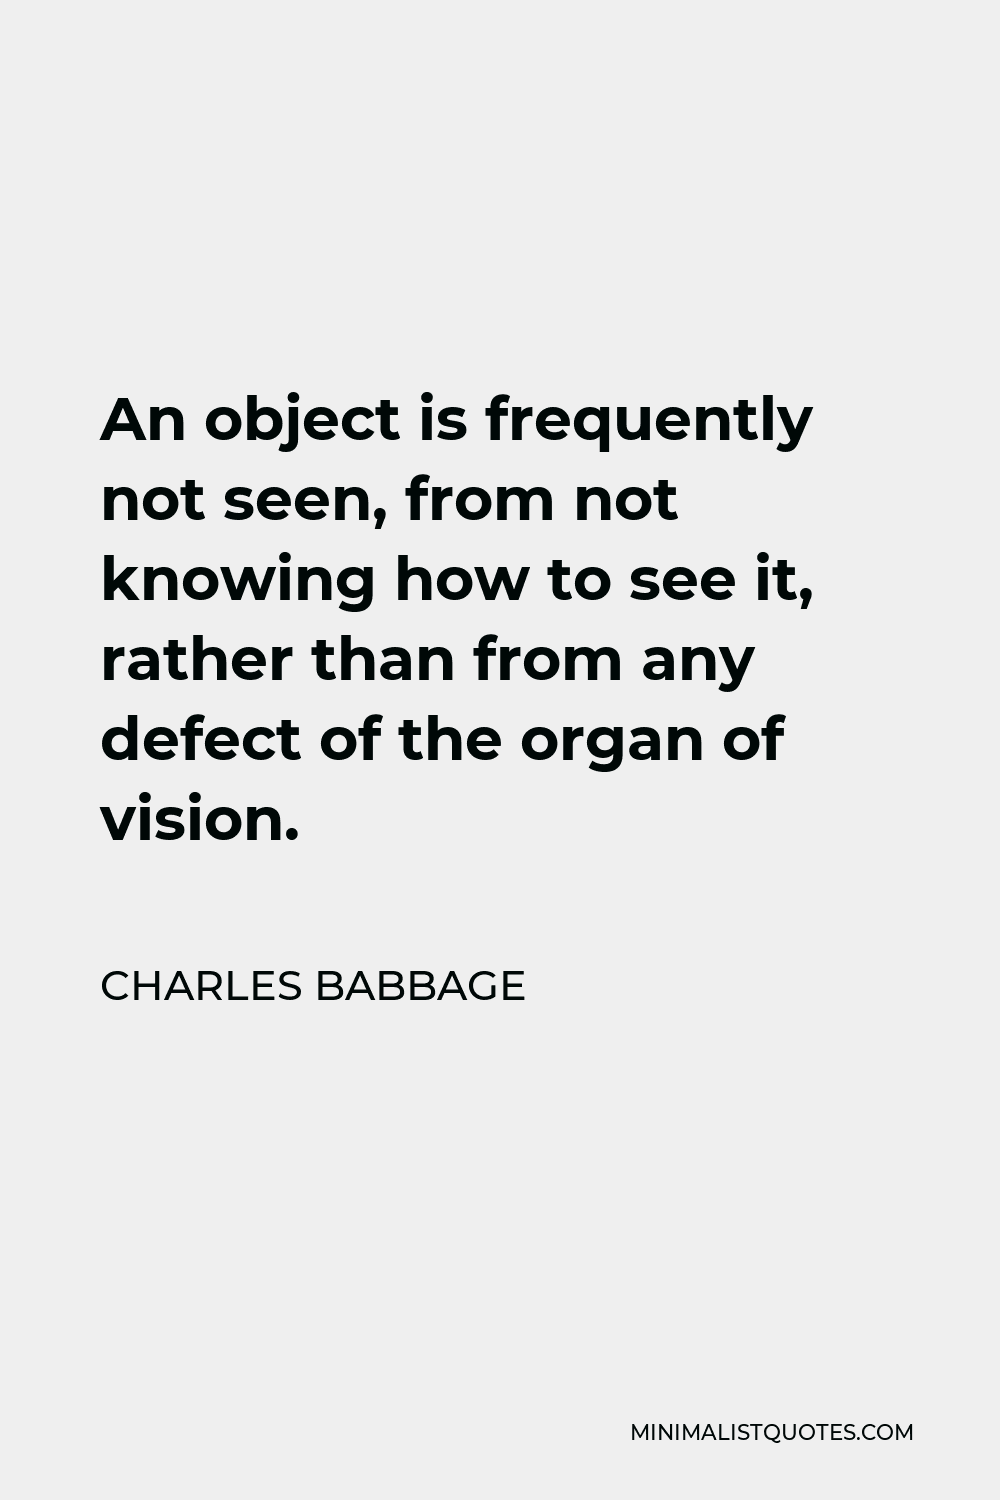 Charles Babbage Quote - An object is frequently not seen, from not knowing how to see it, rather than from any defect of the organ of vision.